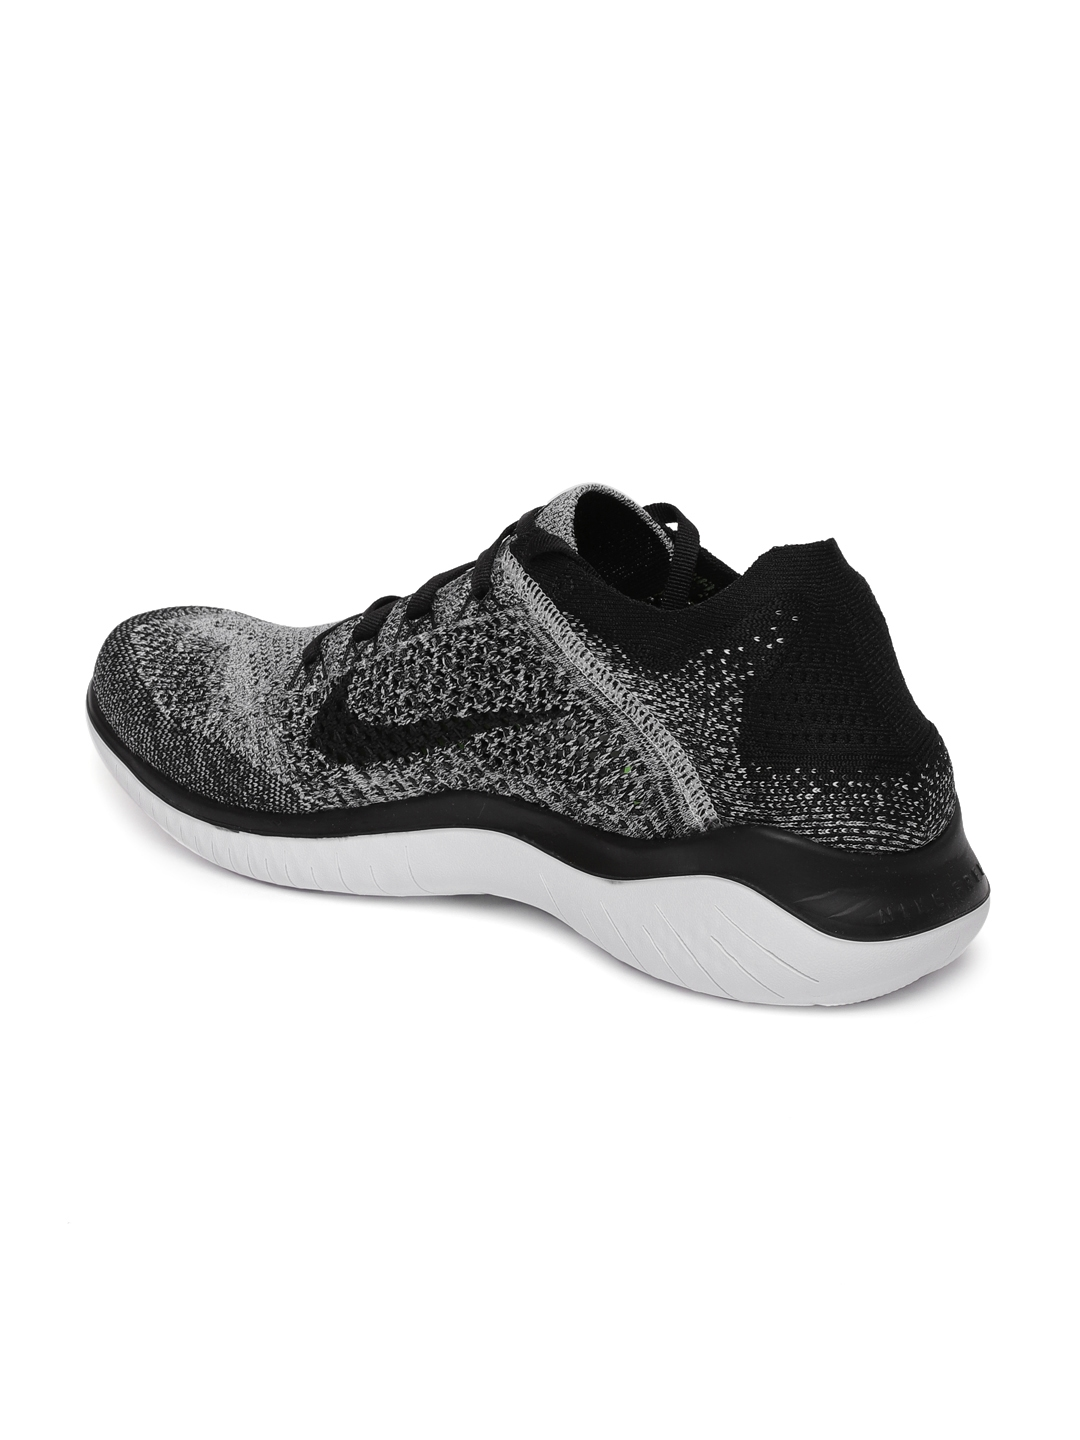 4a7cd77d2f20b Buy Nike Men White   Black Free RN Flyknit 2018 Running Shoes ...